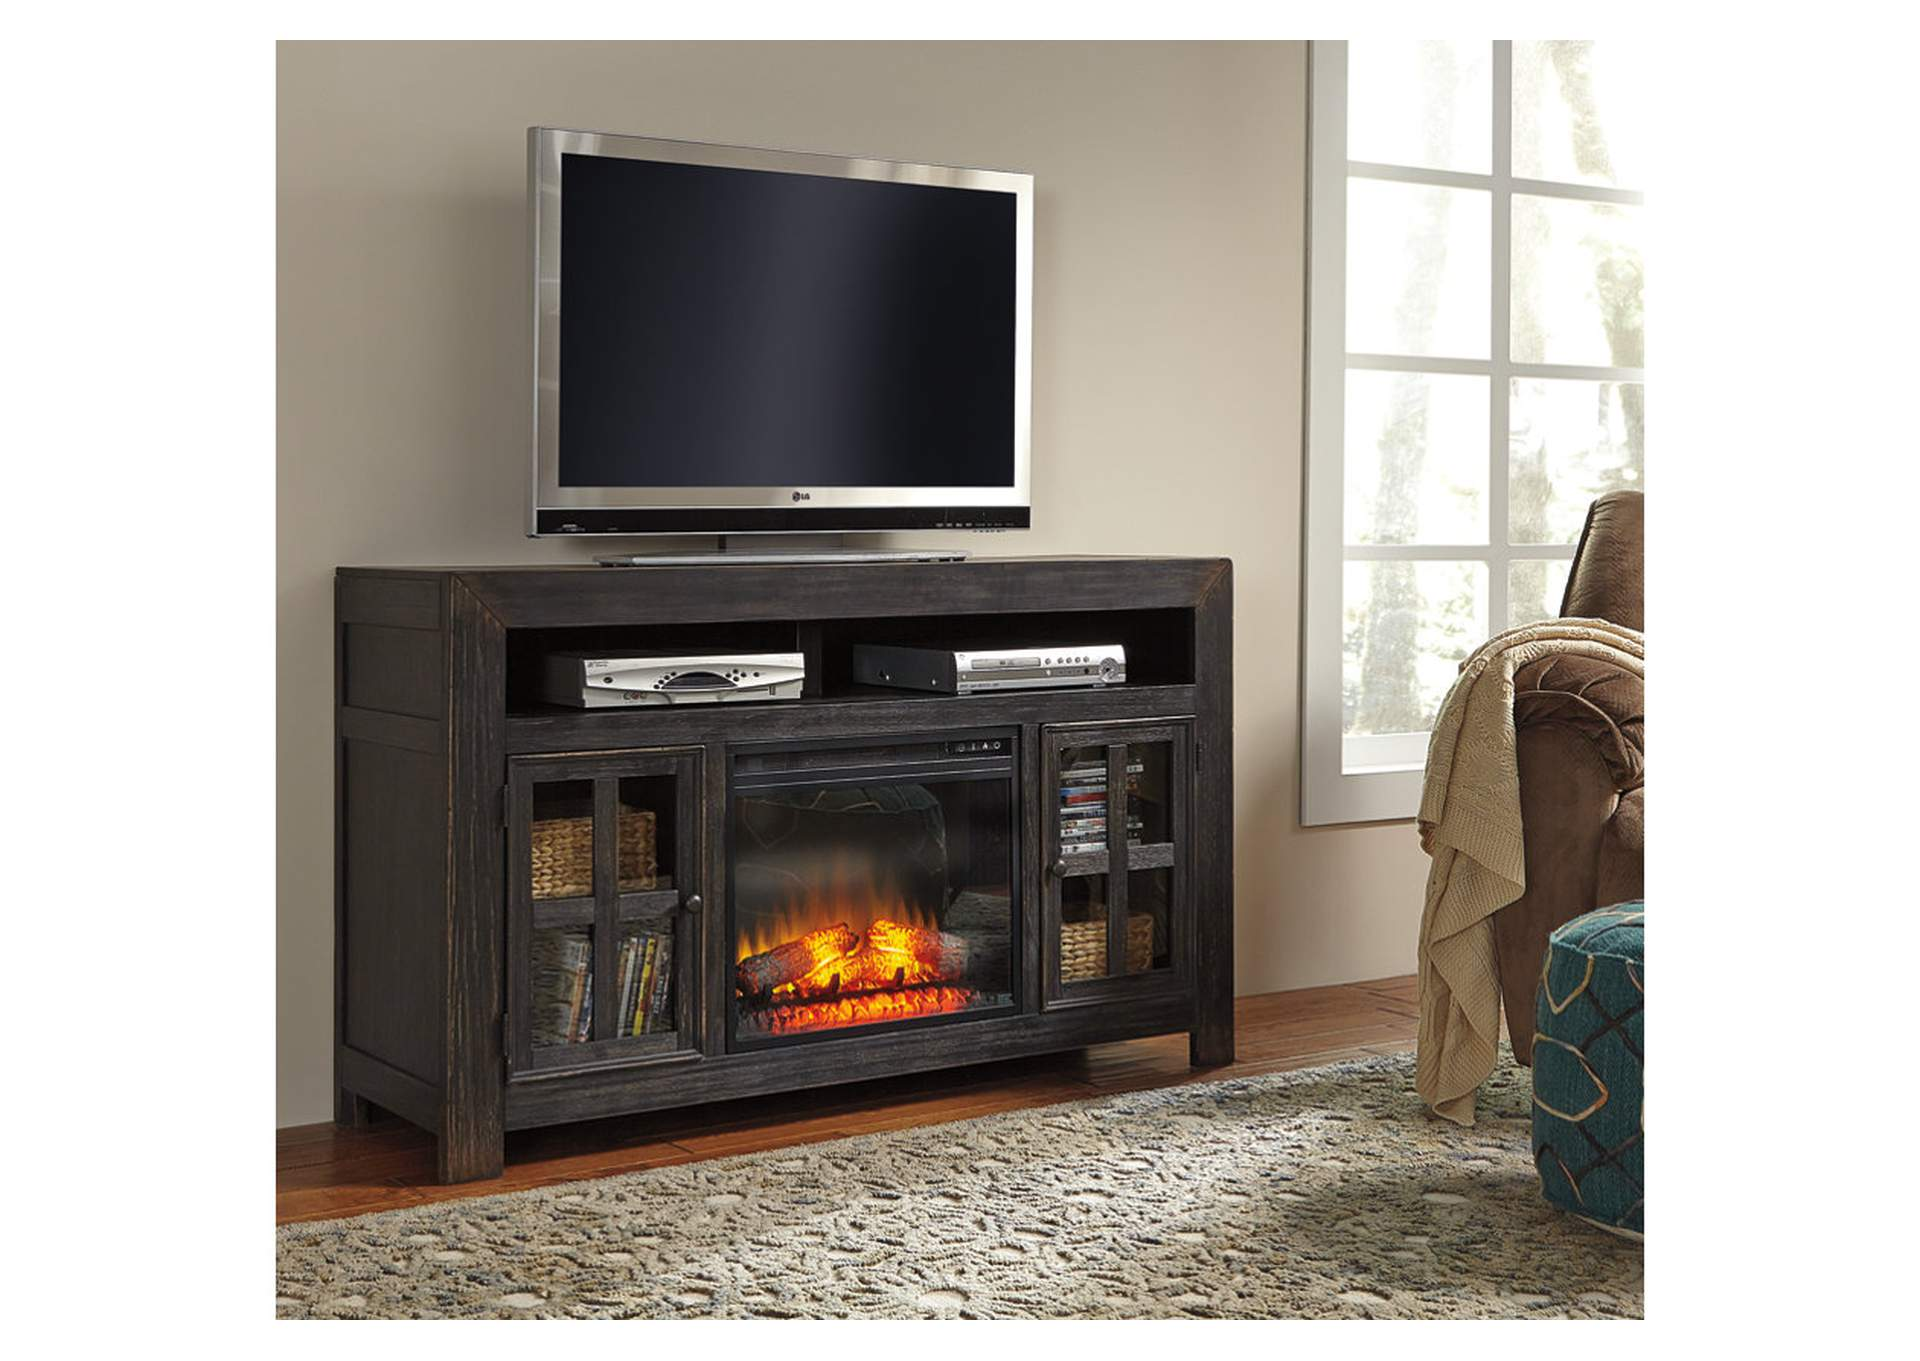 Woods Furniture TX Gavelston Large TV Stand wLED Fireplace Insert